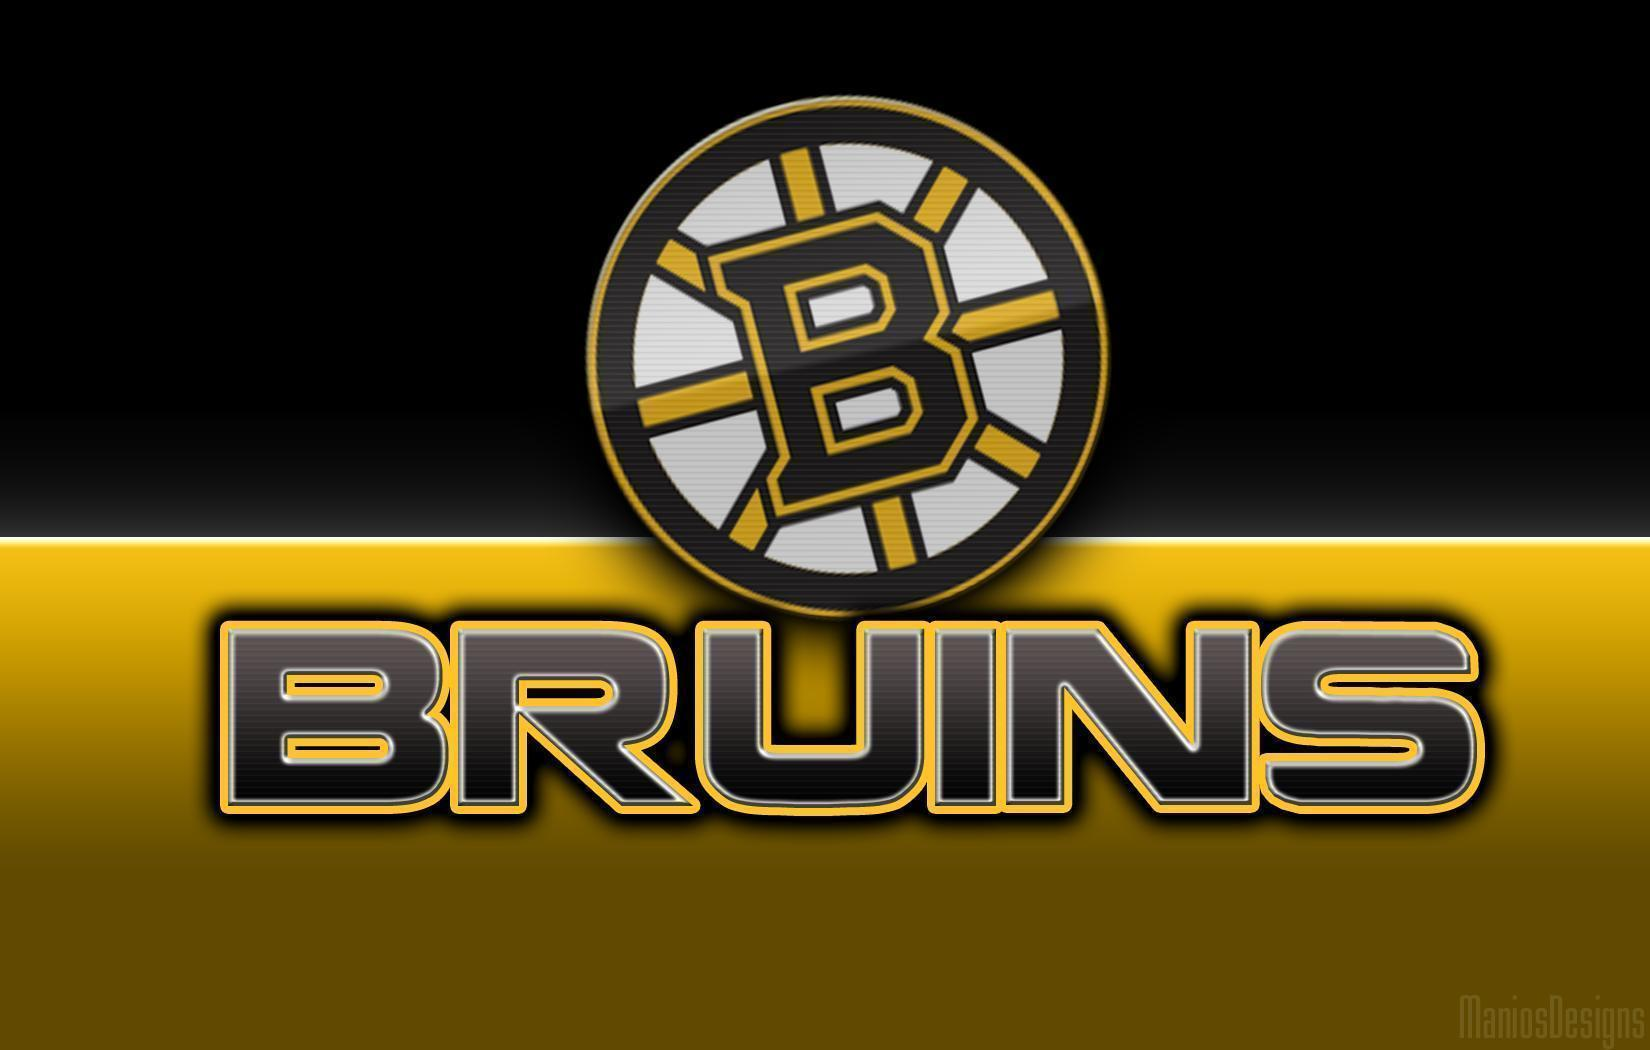 Boston Bruins Wallpaper Boston Bruins Wallpape...